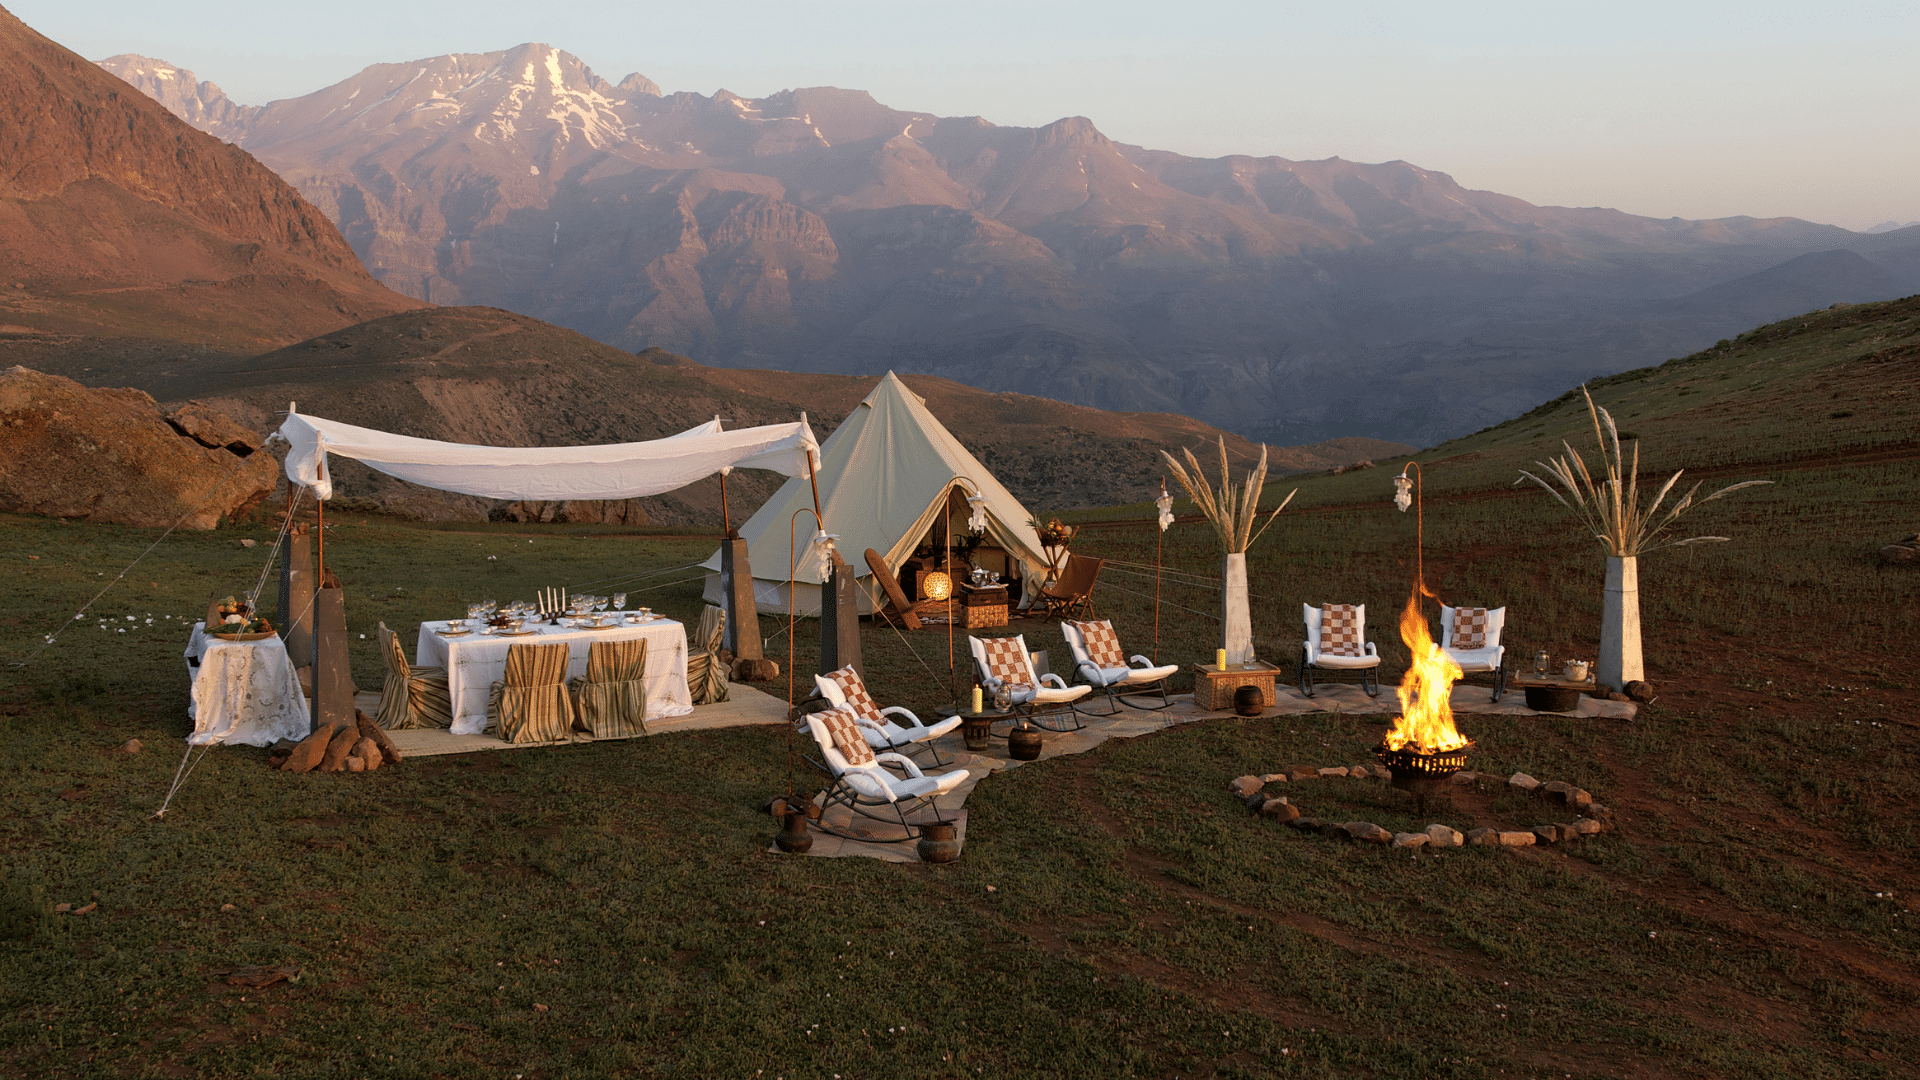 Glamping set up among the mountains at sunset. There is a nice dinner set up with a white table clothed setting and wine glasses ready to be filled. A fire pit surrounded by six luxurious and comfy looking lounge chairs. And a large yurt like tent with all the expected glamping luxuries inside like a bed and cozy lamps and blankets.